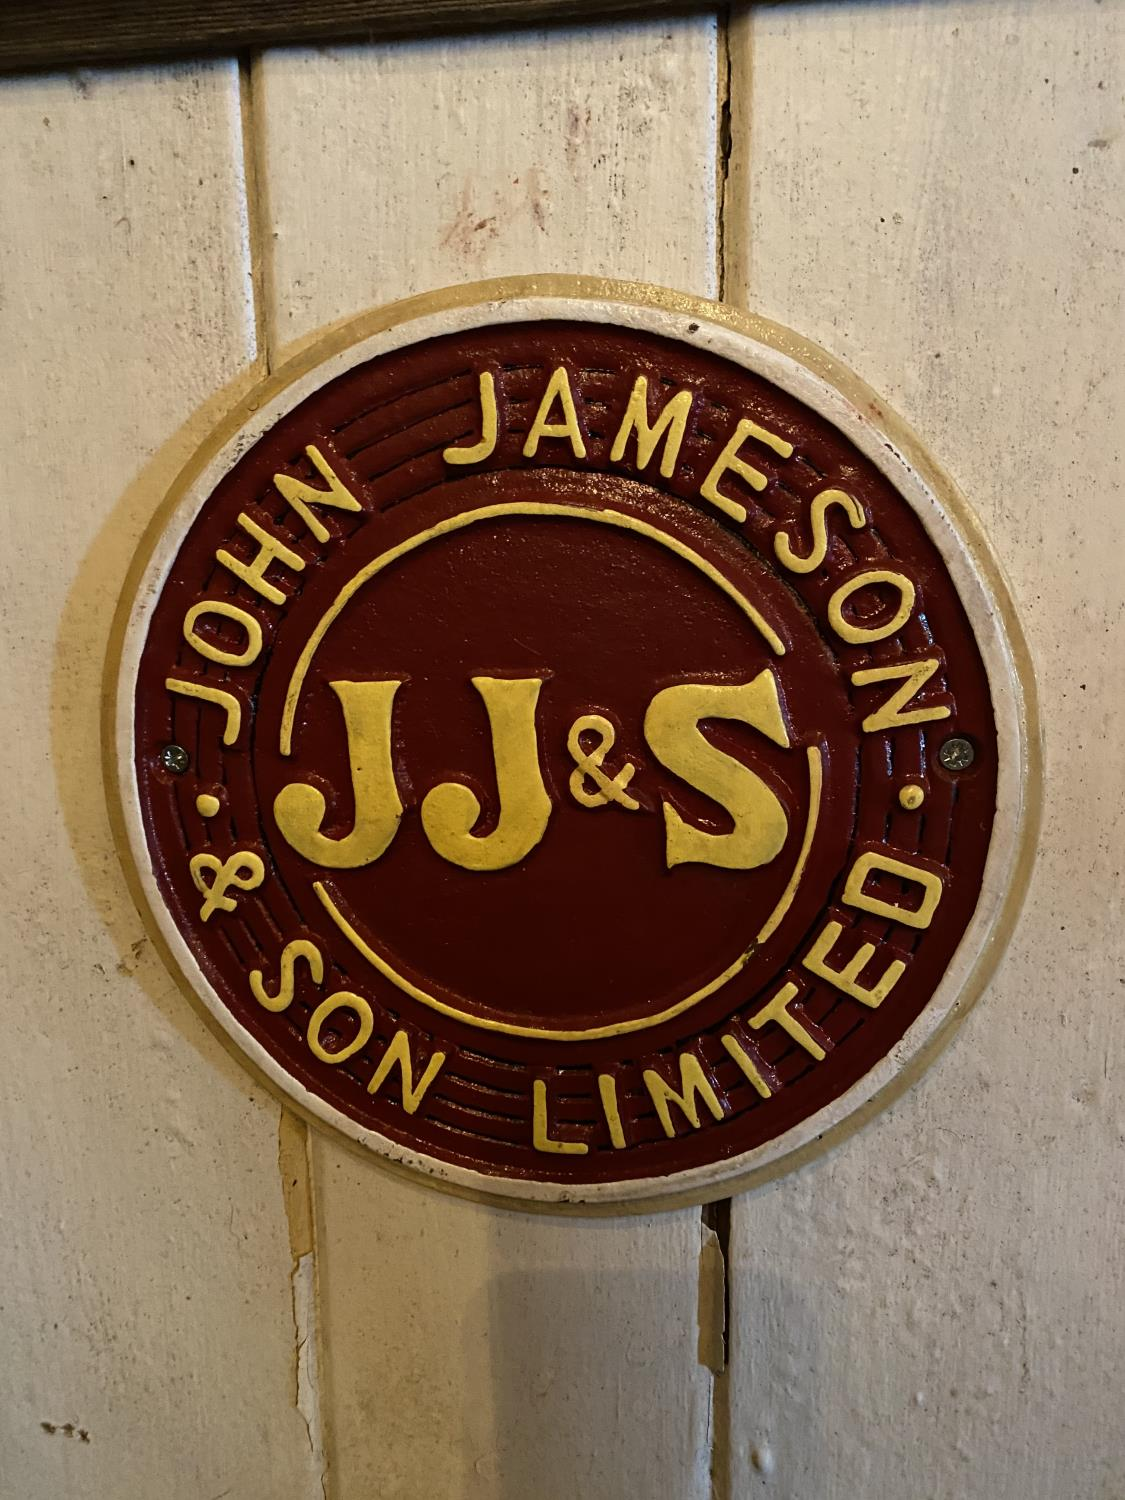 Cast iron John Jameson advertising sign.